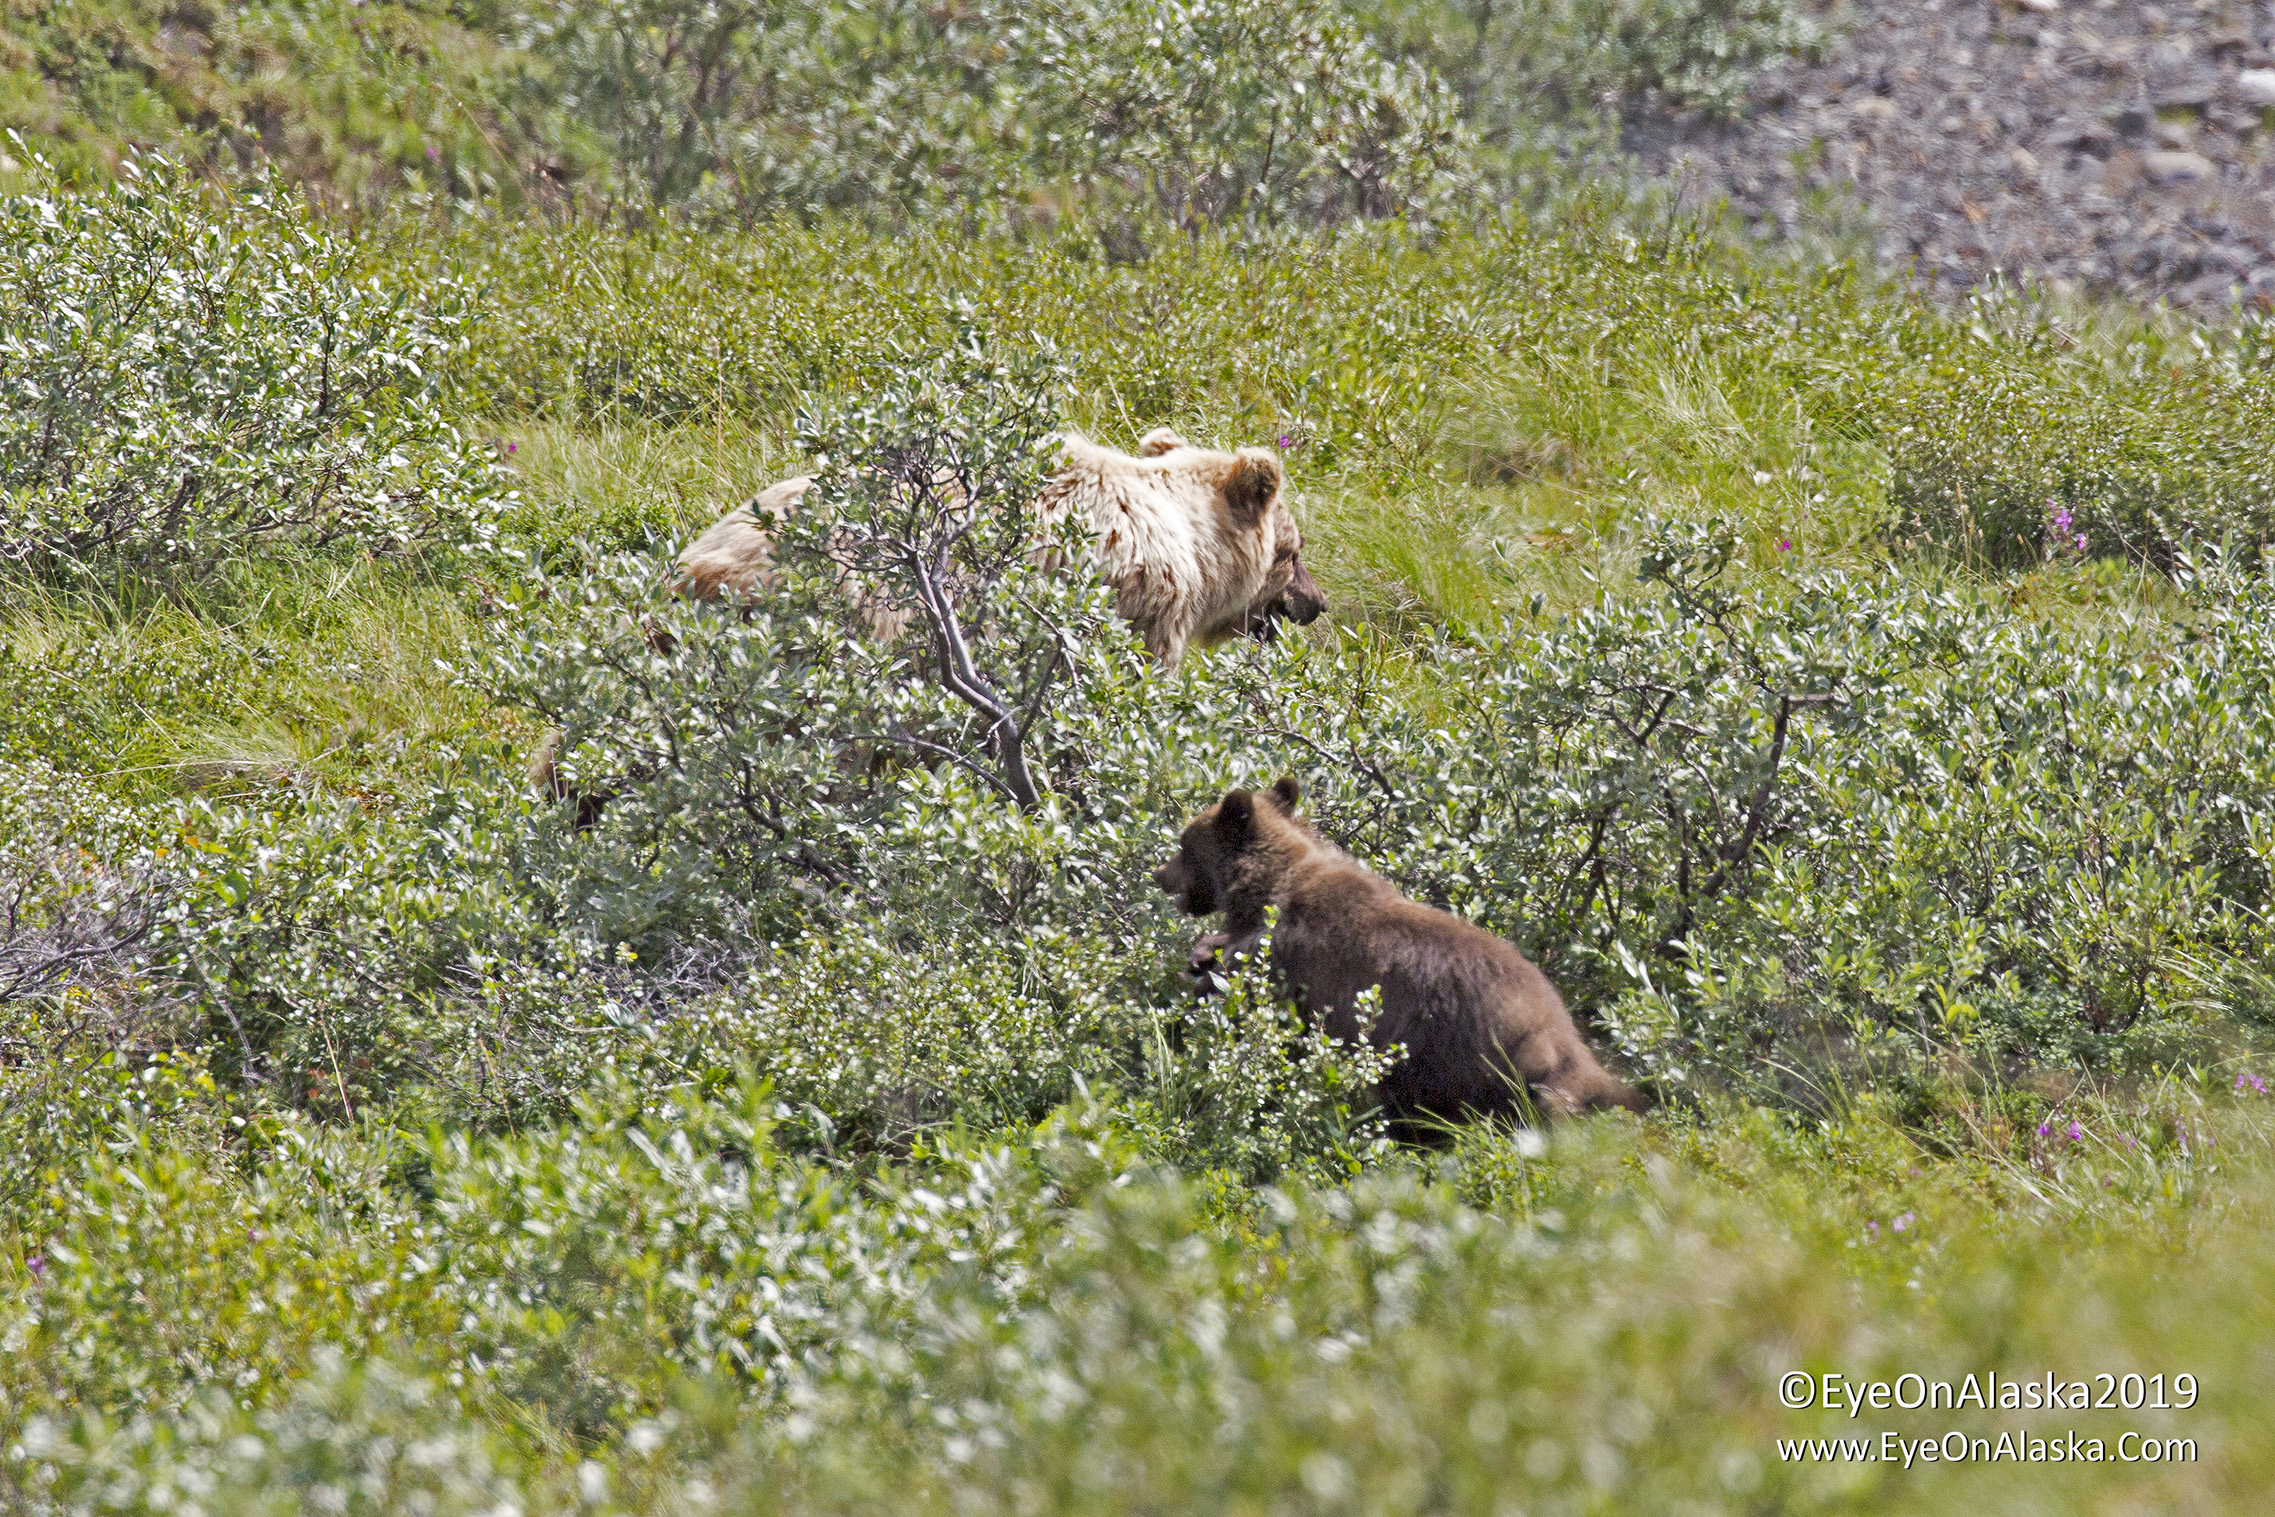 You can make out the blond collar on the spring cub that tells us it was born this year.